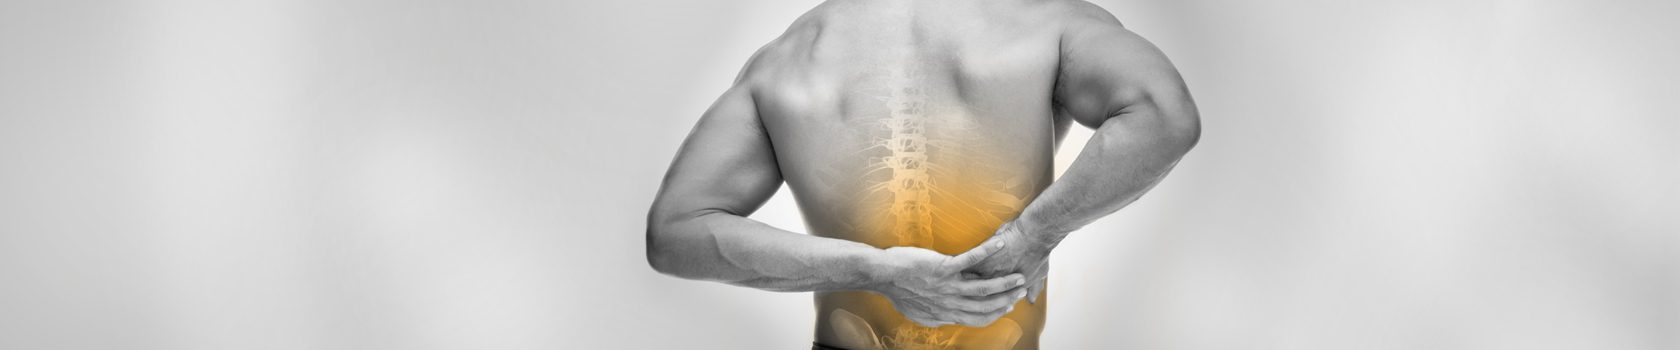 Back pain relief with Physiotherapy Canberra